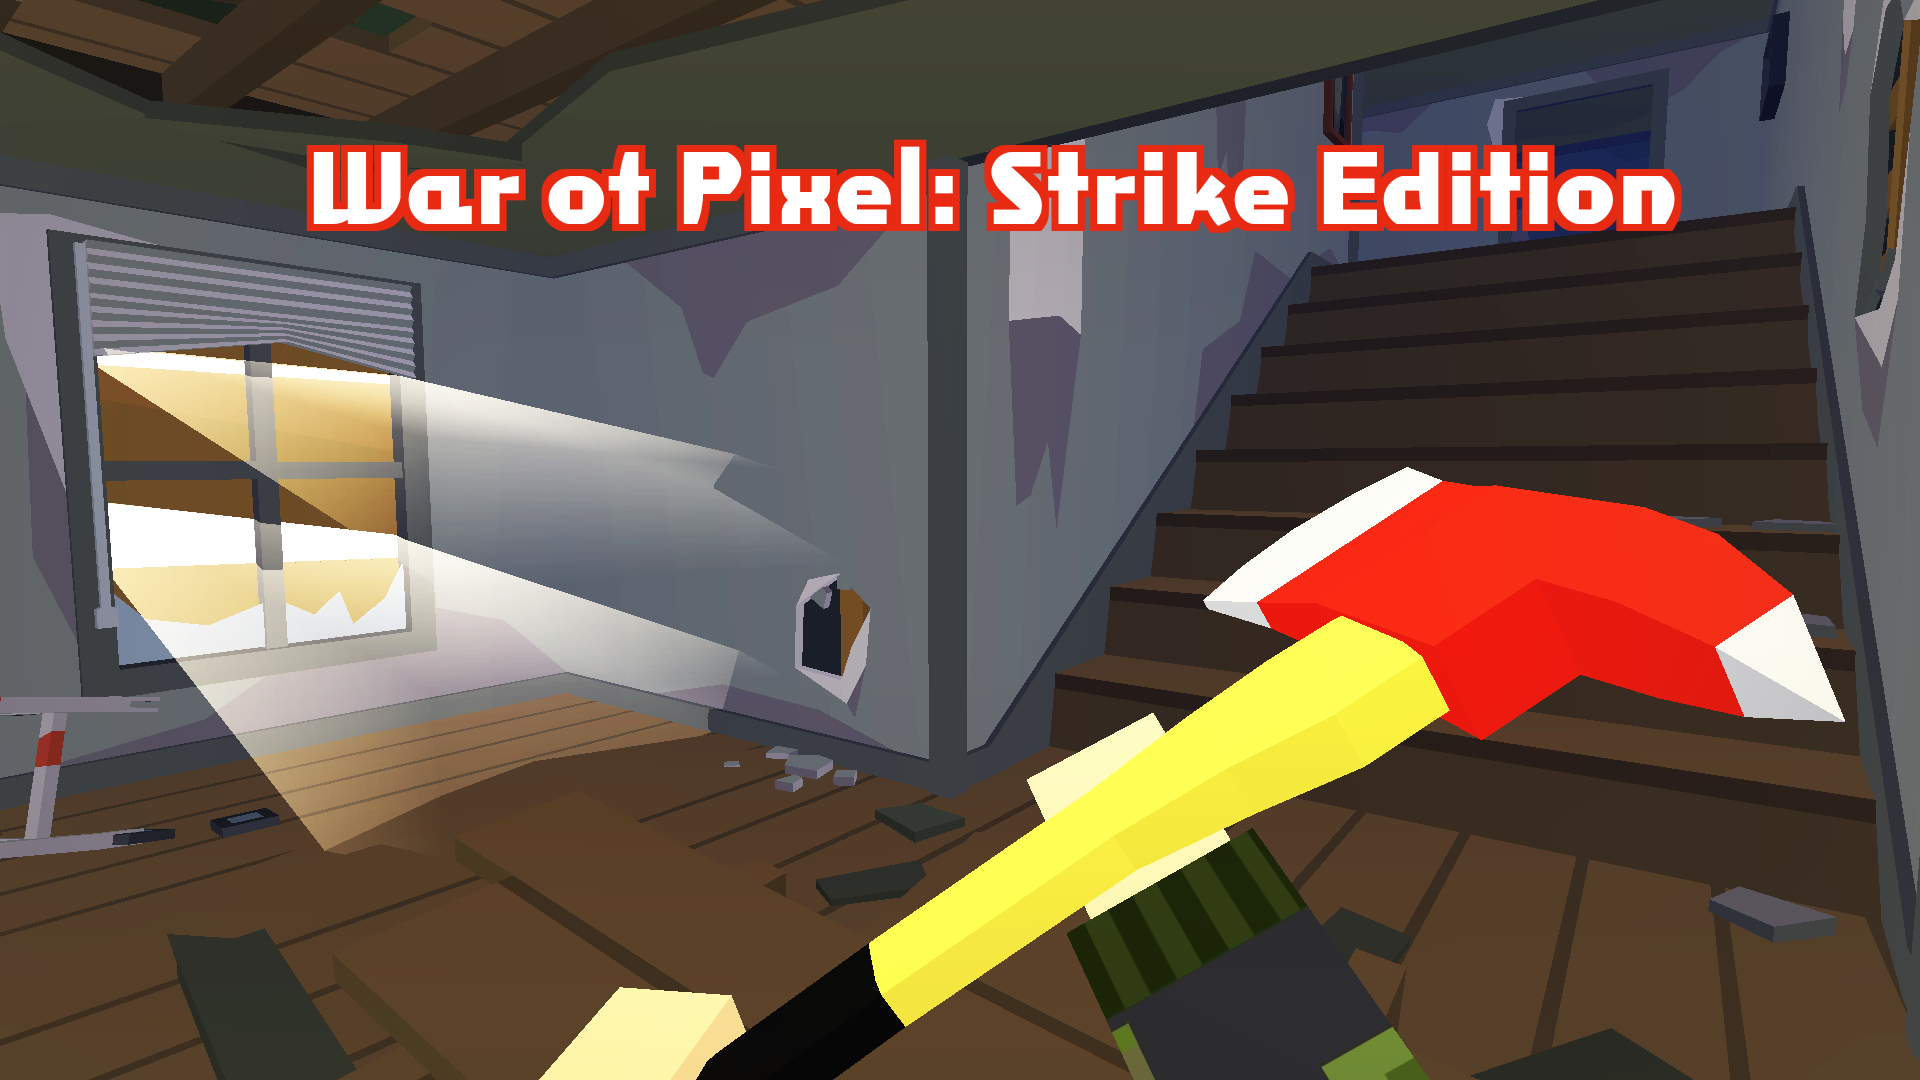 War of Pixel: Strike Edition